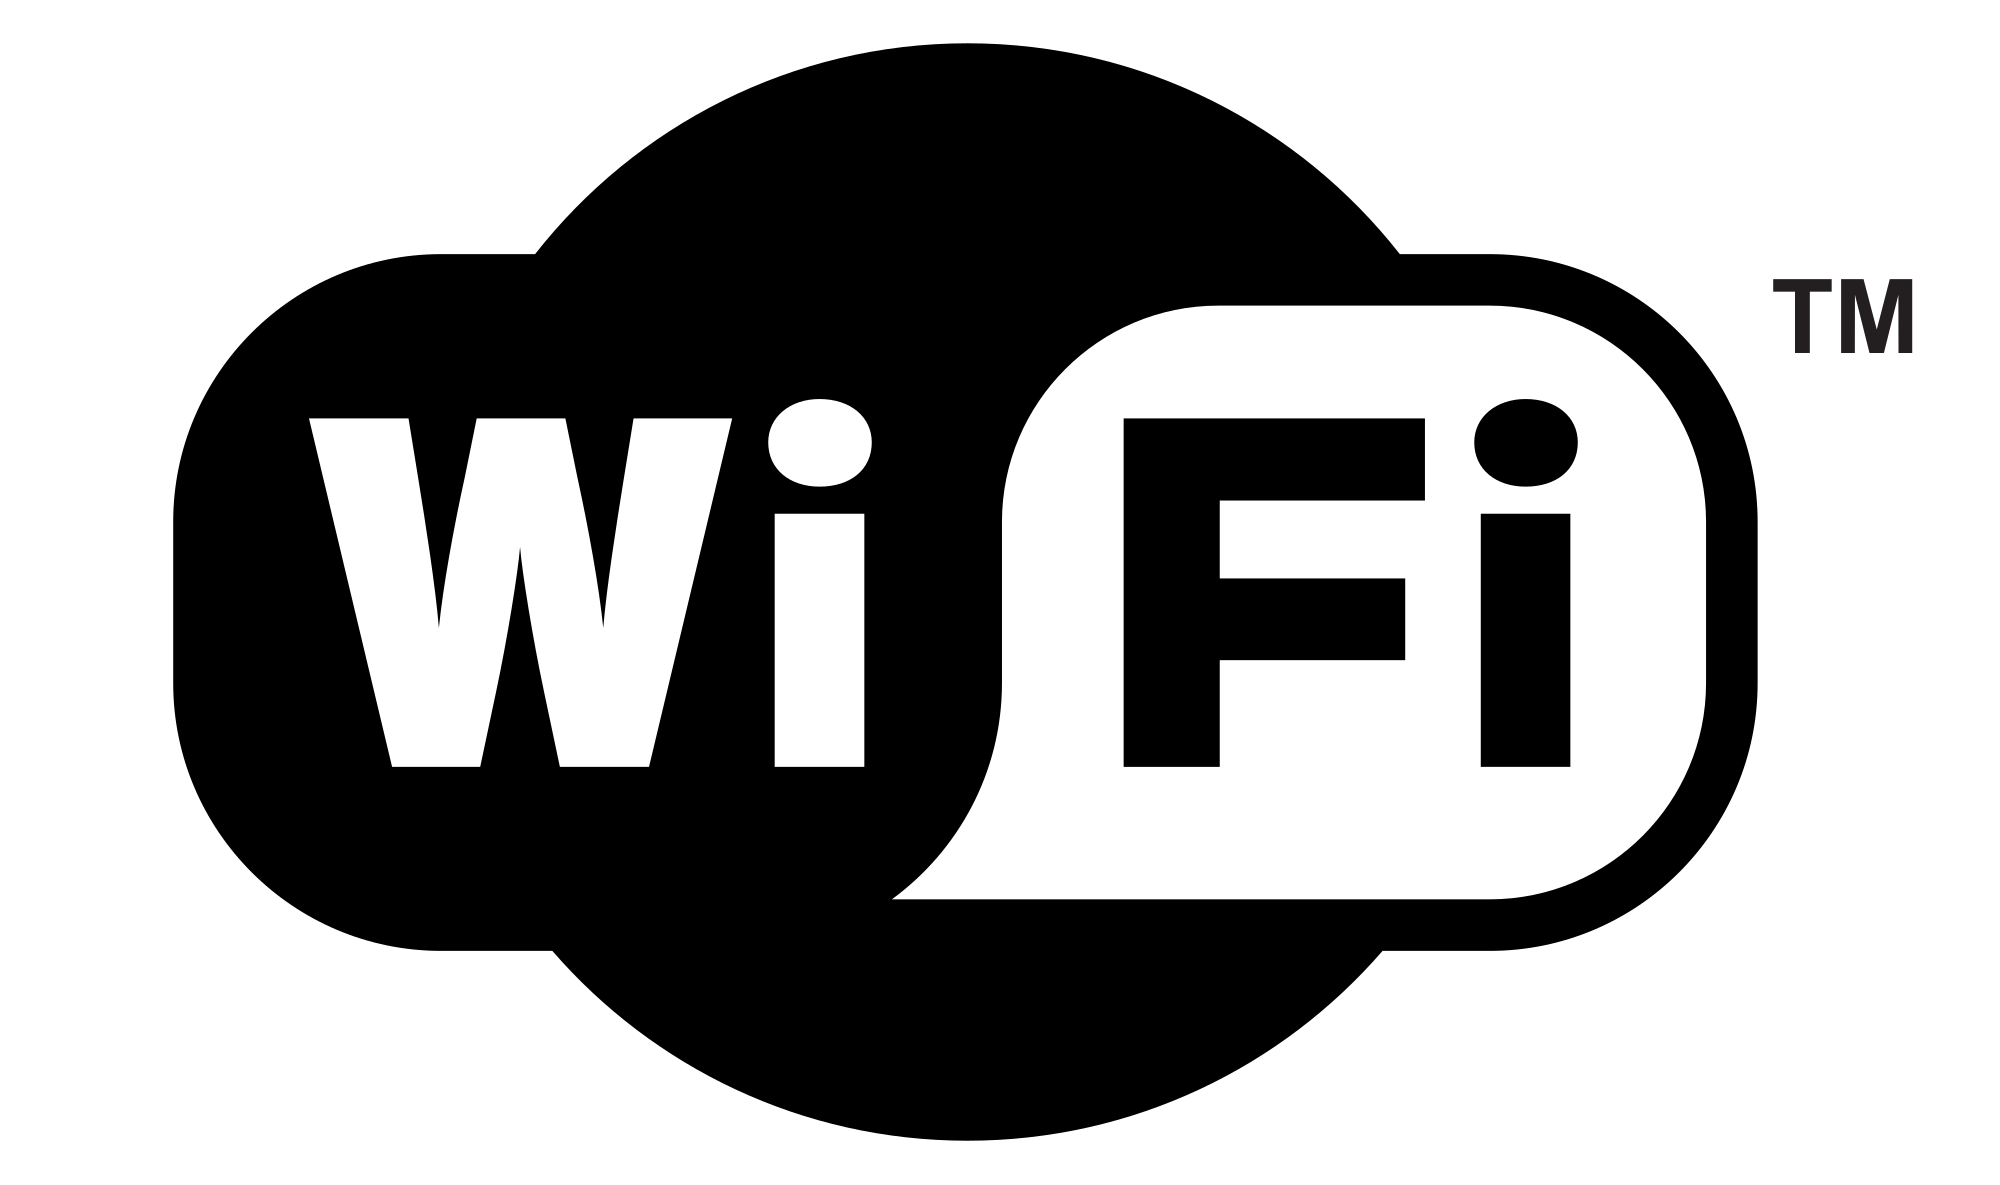 Wifi clipart png. File logo svg wikimedia